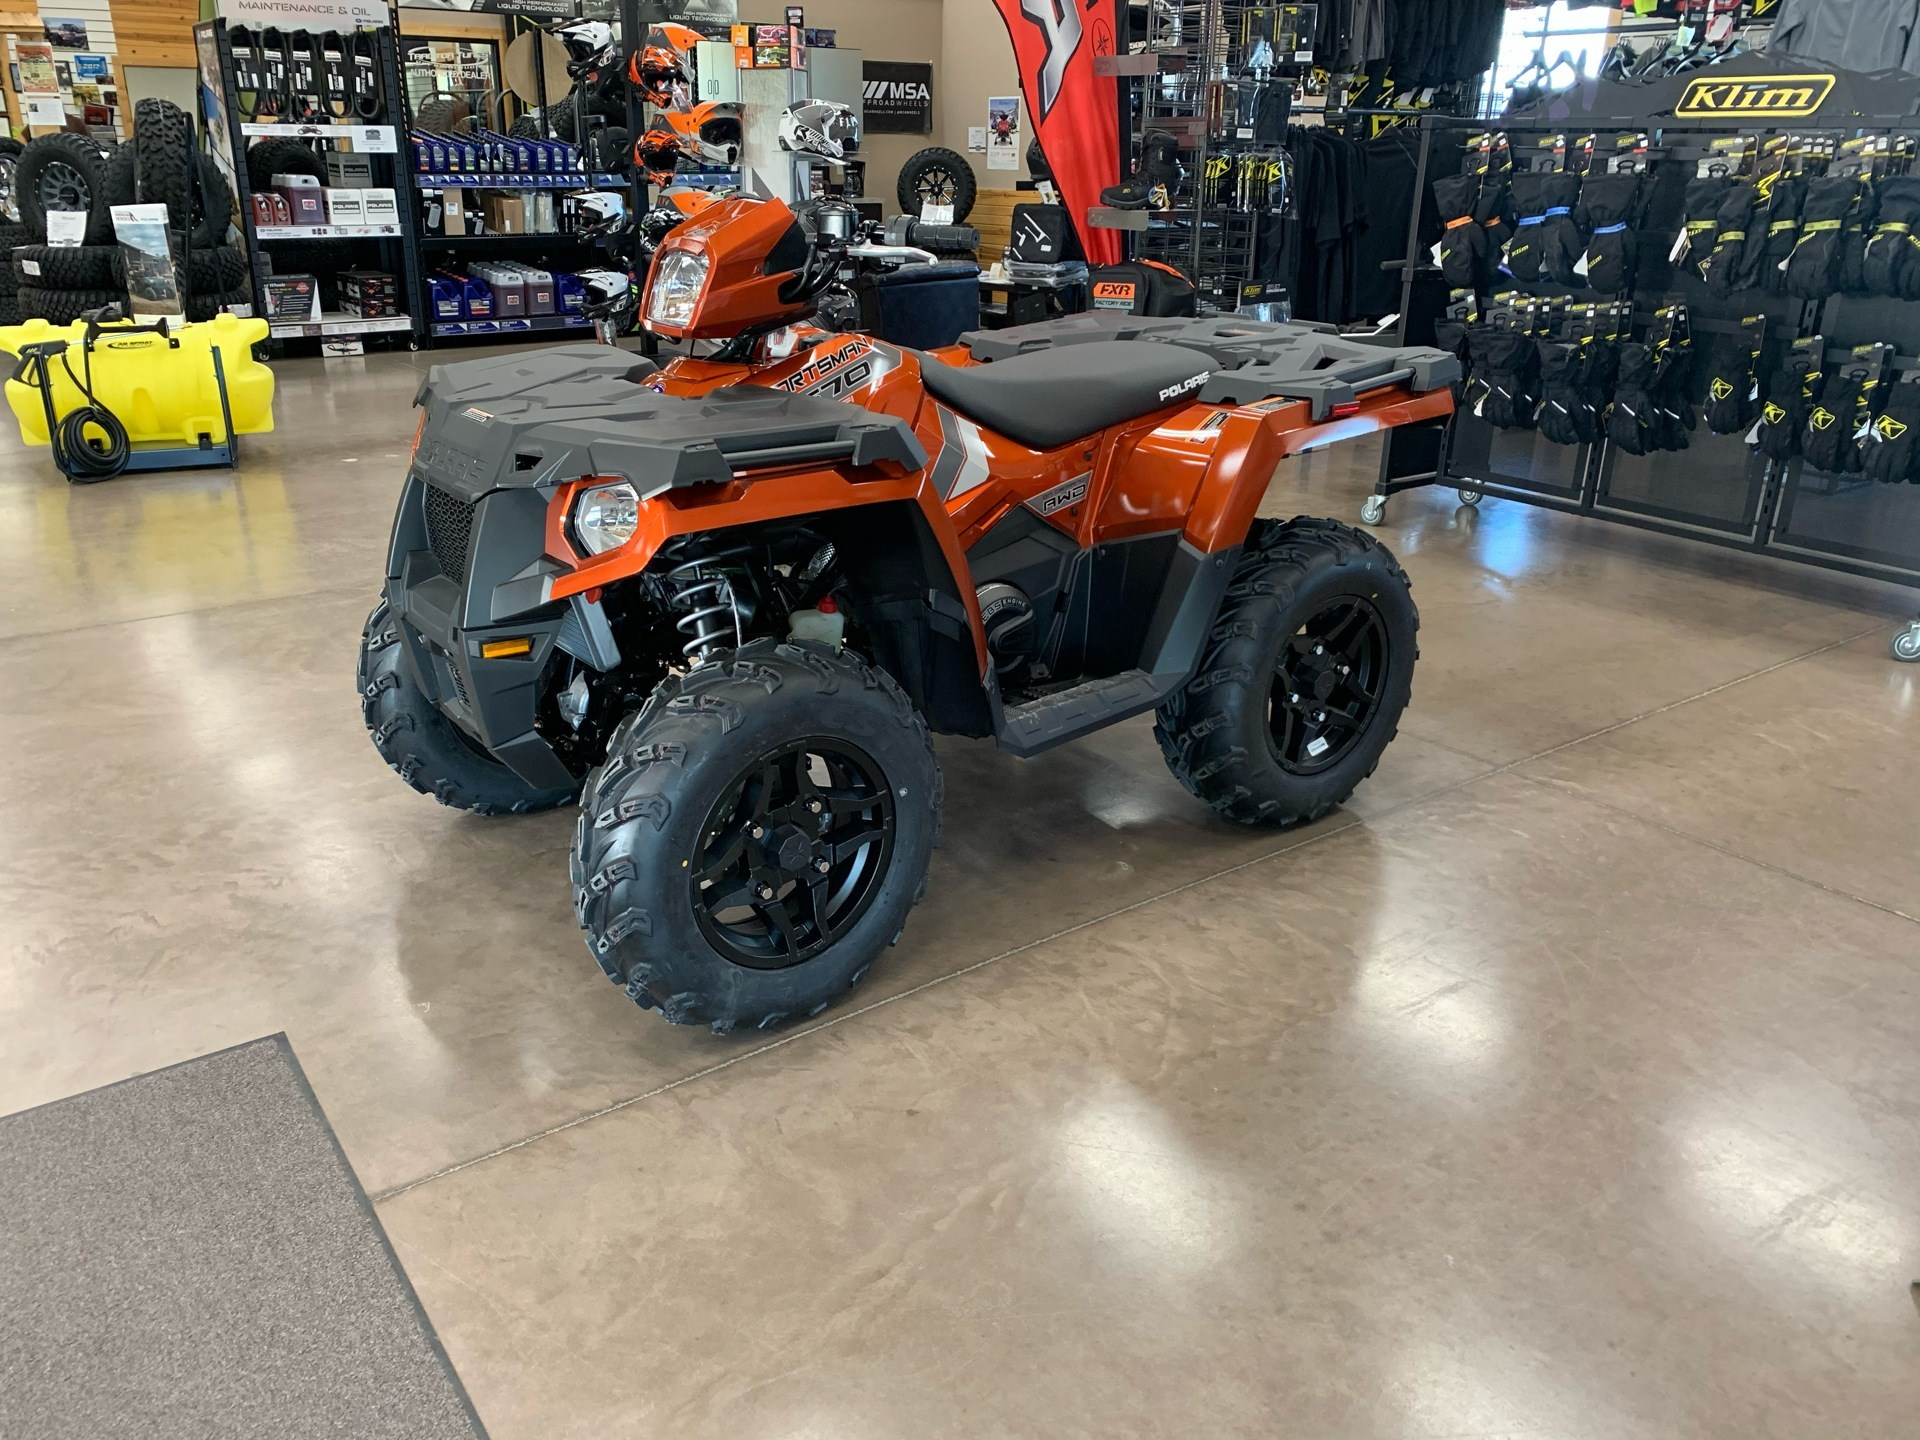 2020 Polaris Sportsman 570 Premium in Algona, Iowa - Photo 3